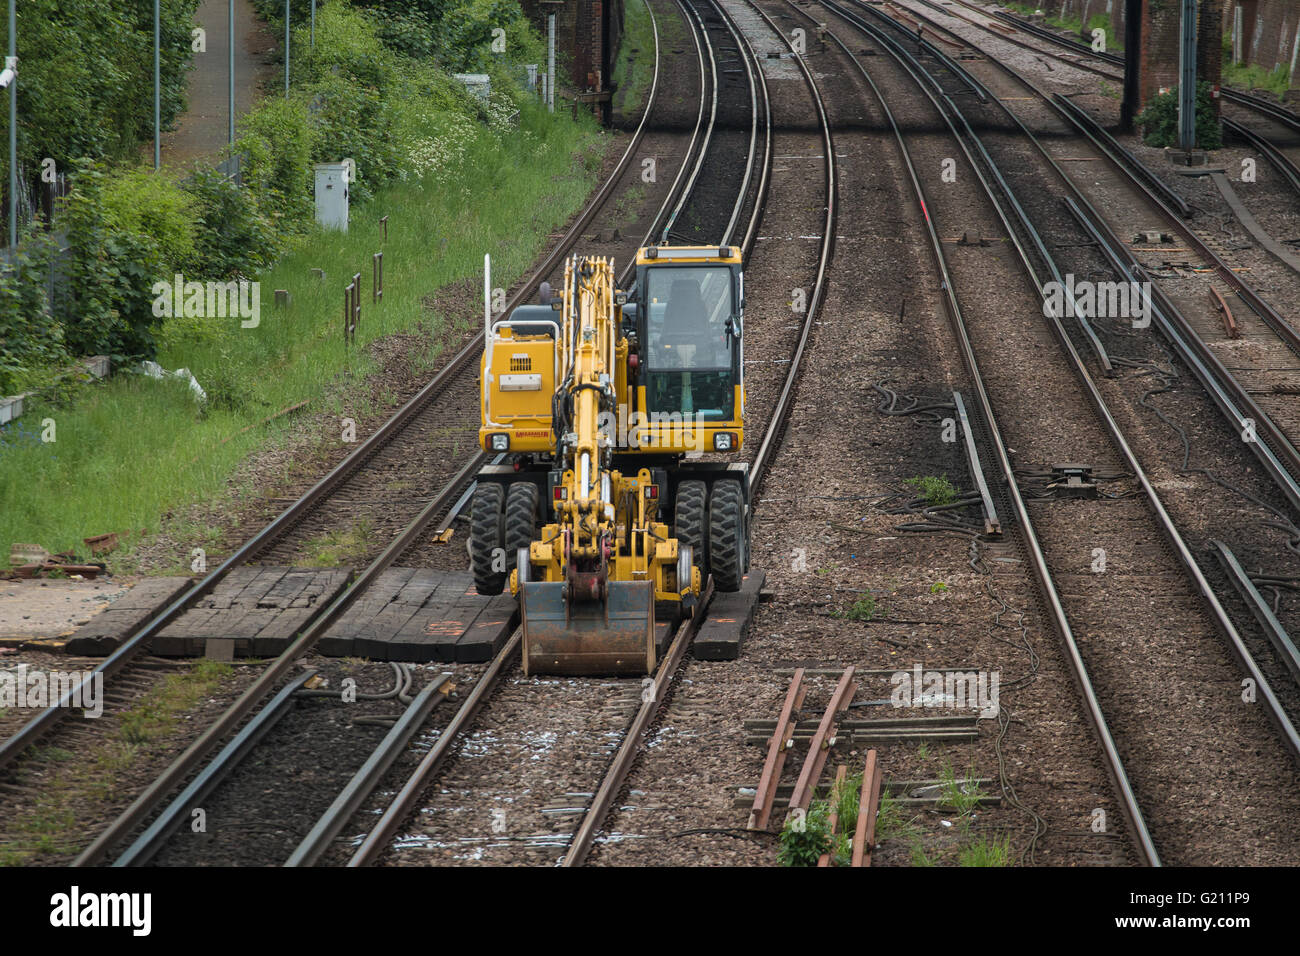 Works on the train lines - Stock Image